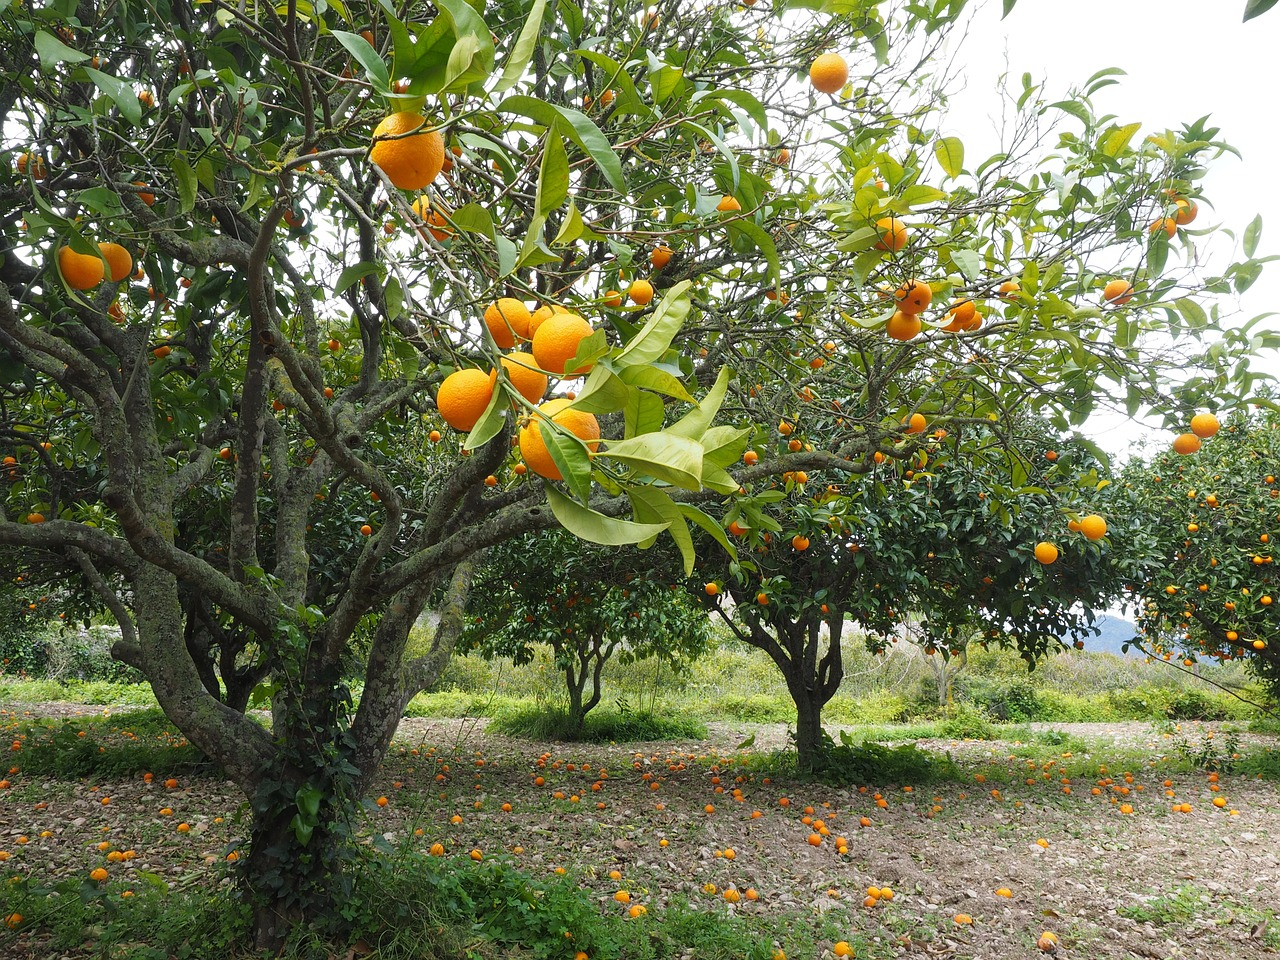 Citrus Growers Can See More Money From Tap